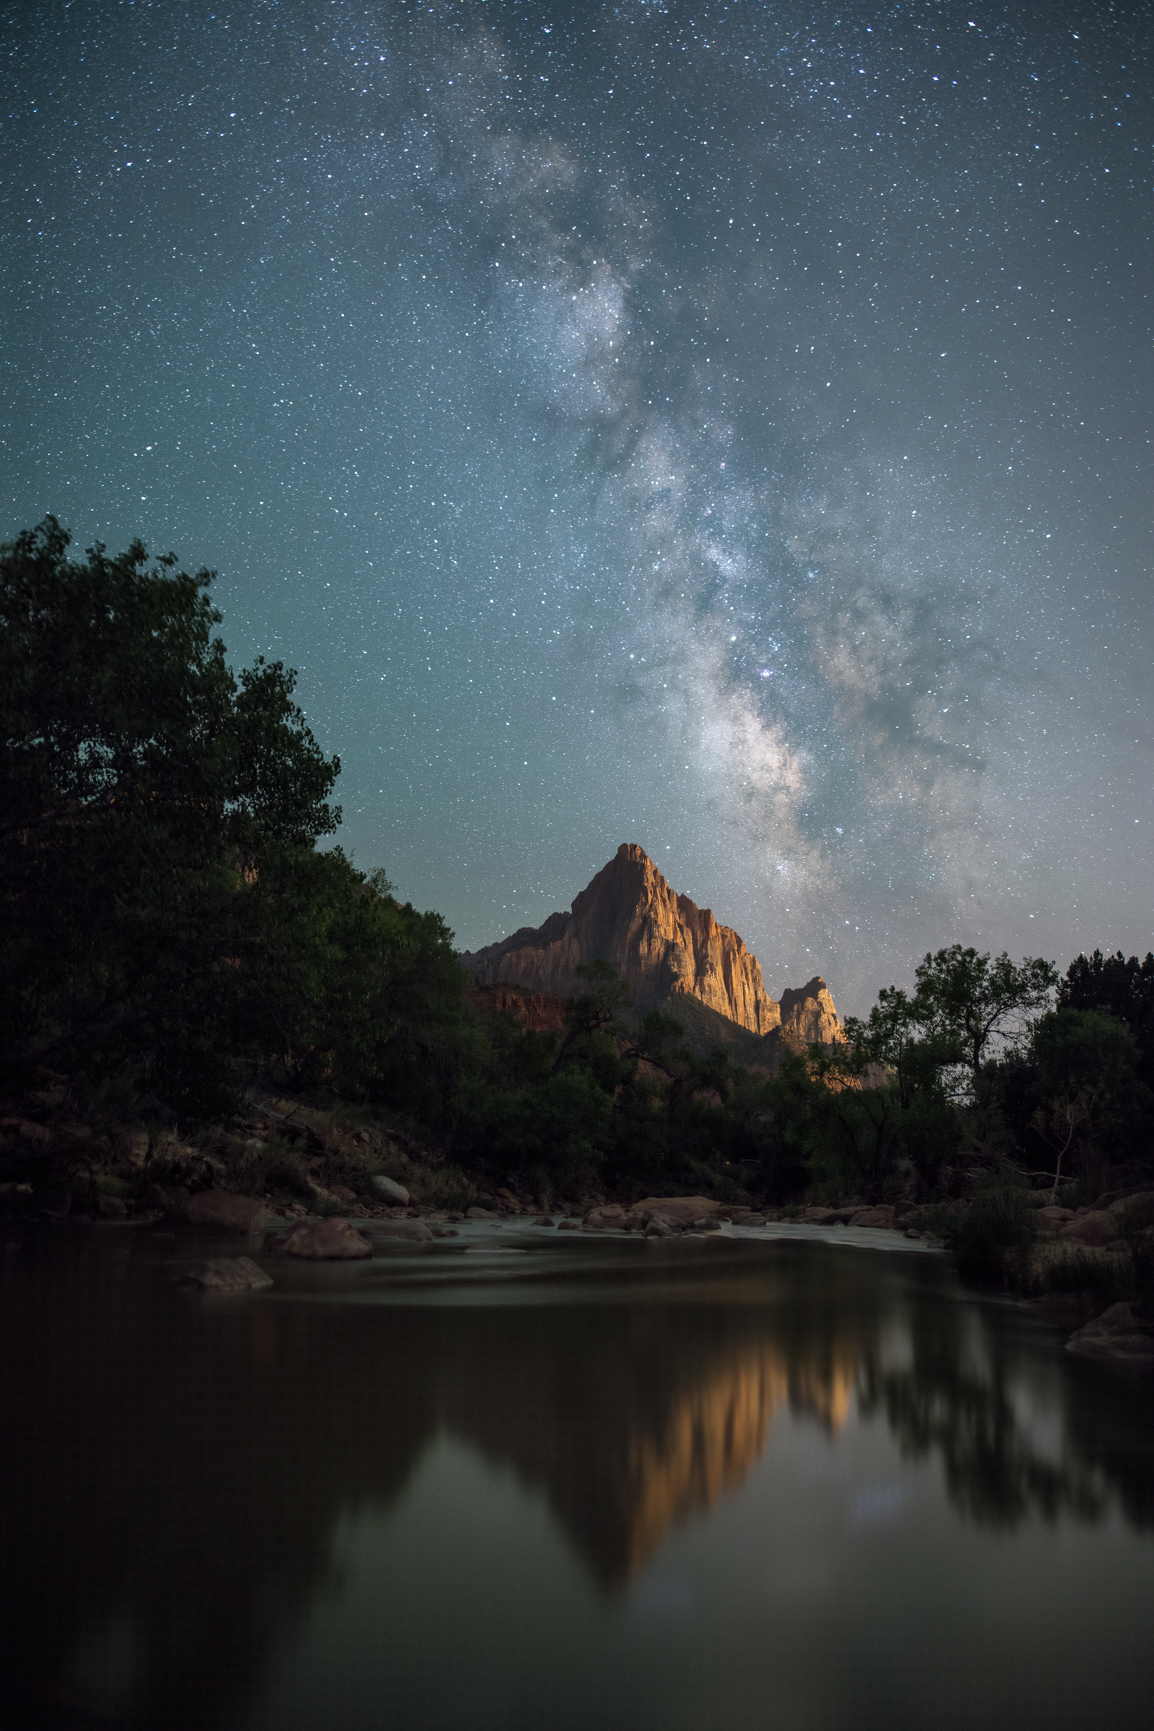 The Watchman of Zion with Milky Way Galaxy Reflection